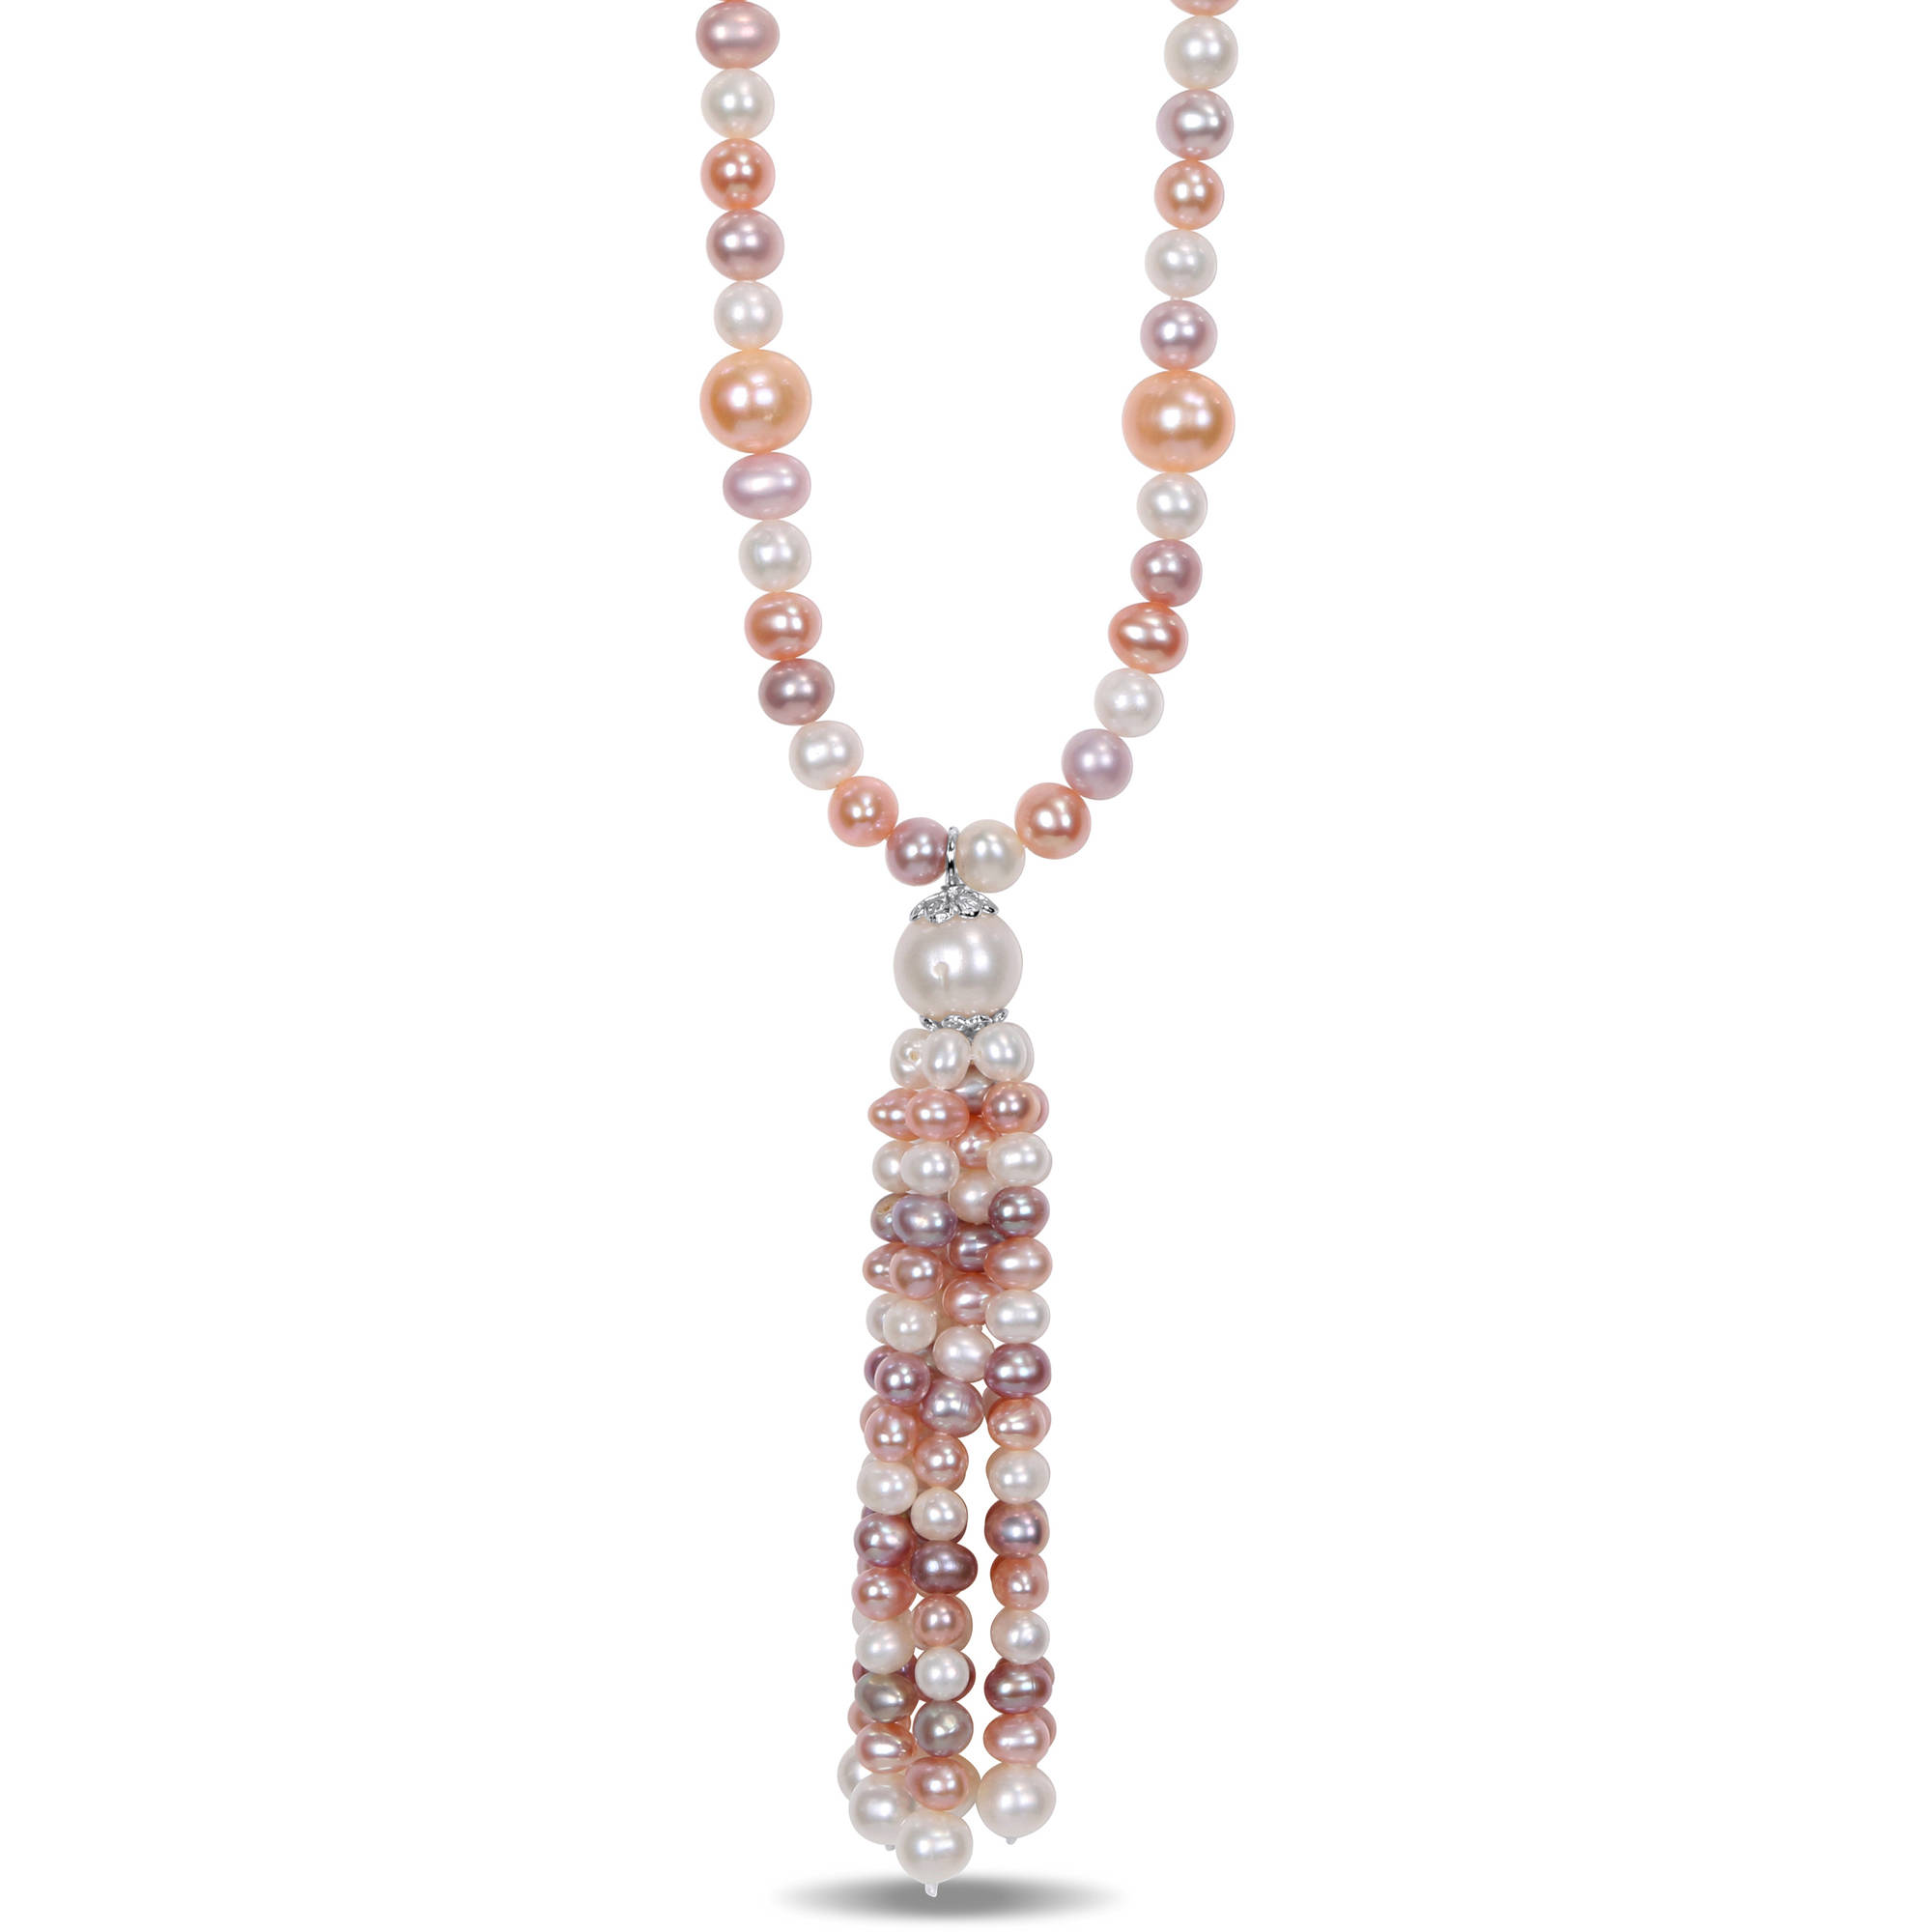 "Tangelo 4-11mm White, Pink and Peach Cultured Freshwater Pearl Sterling Silver Tassel Necklace, 30"" by Tangelo"